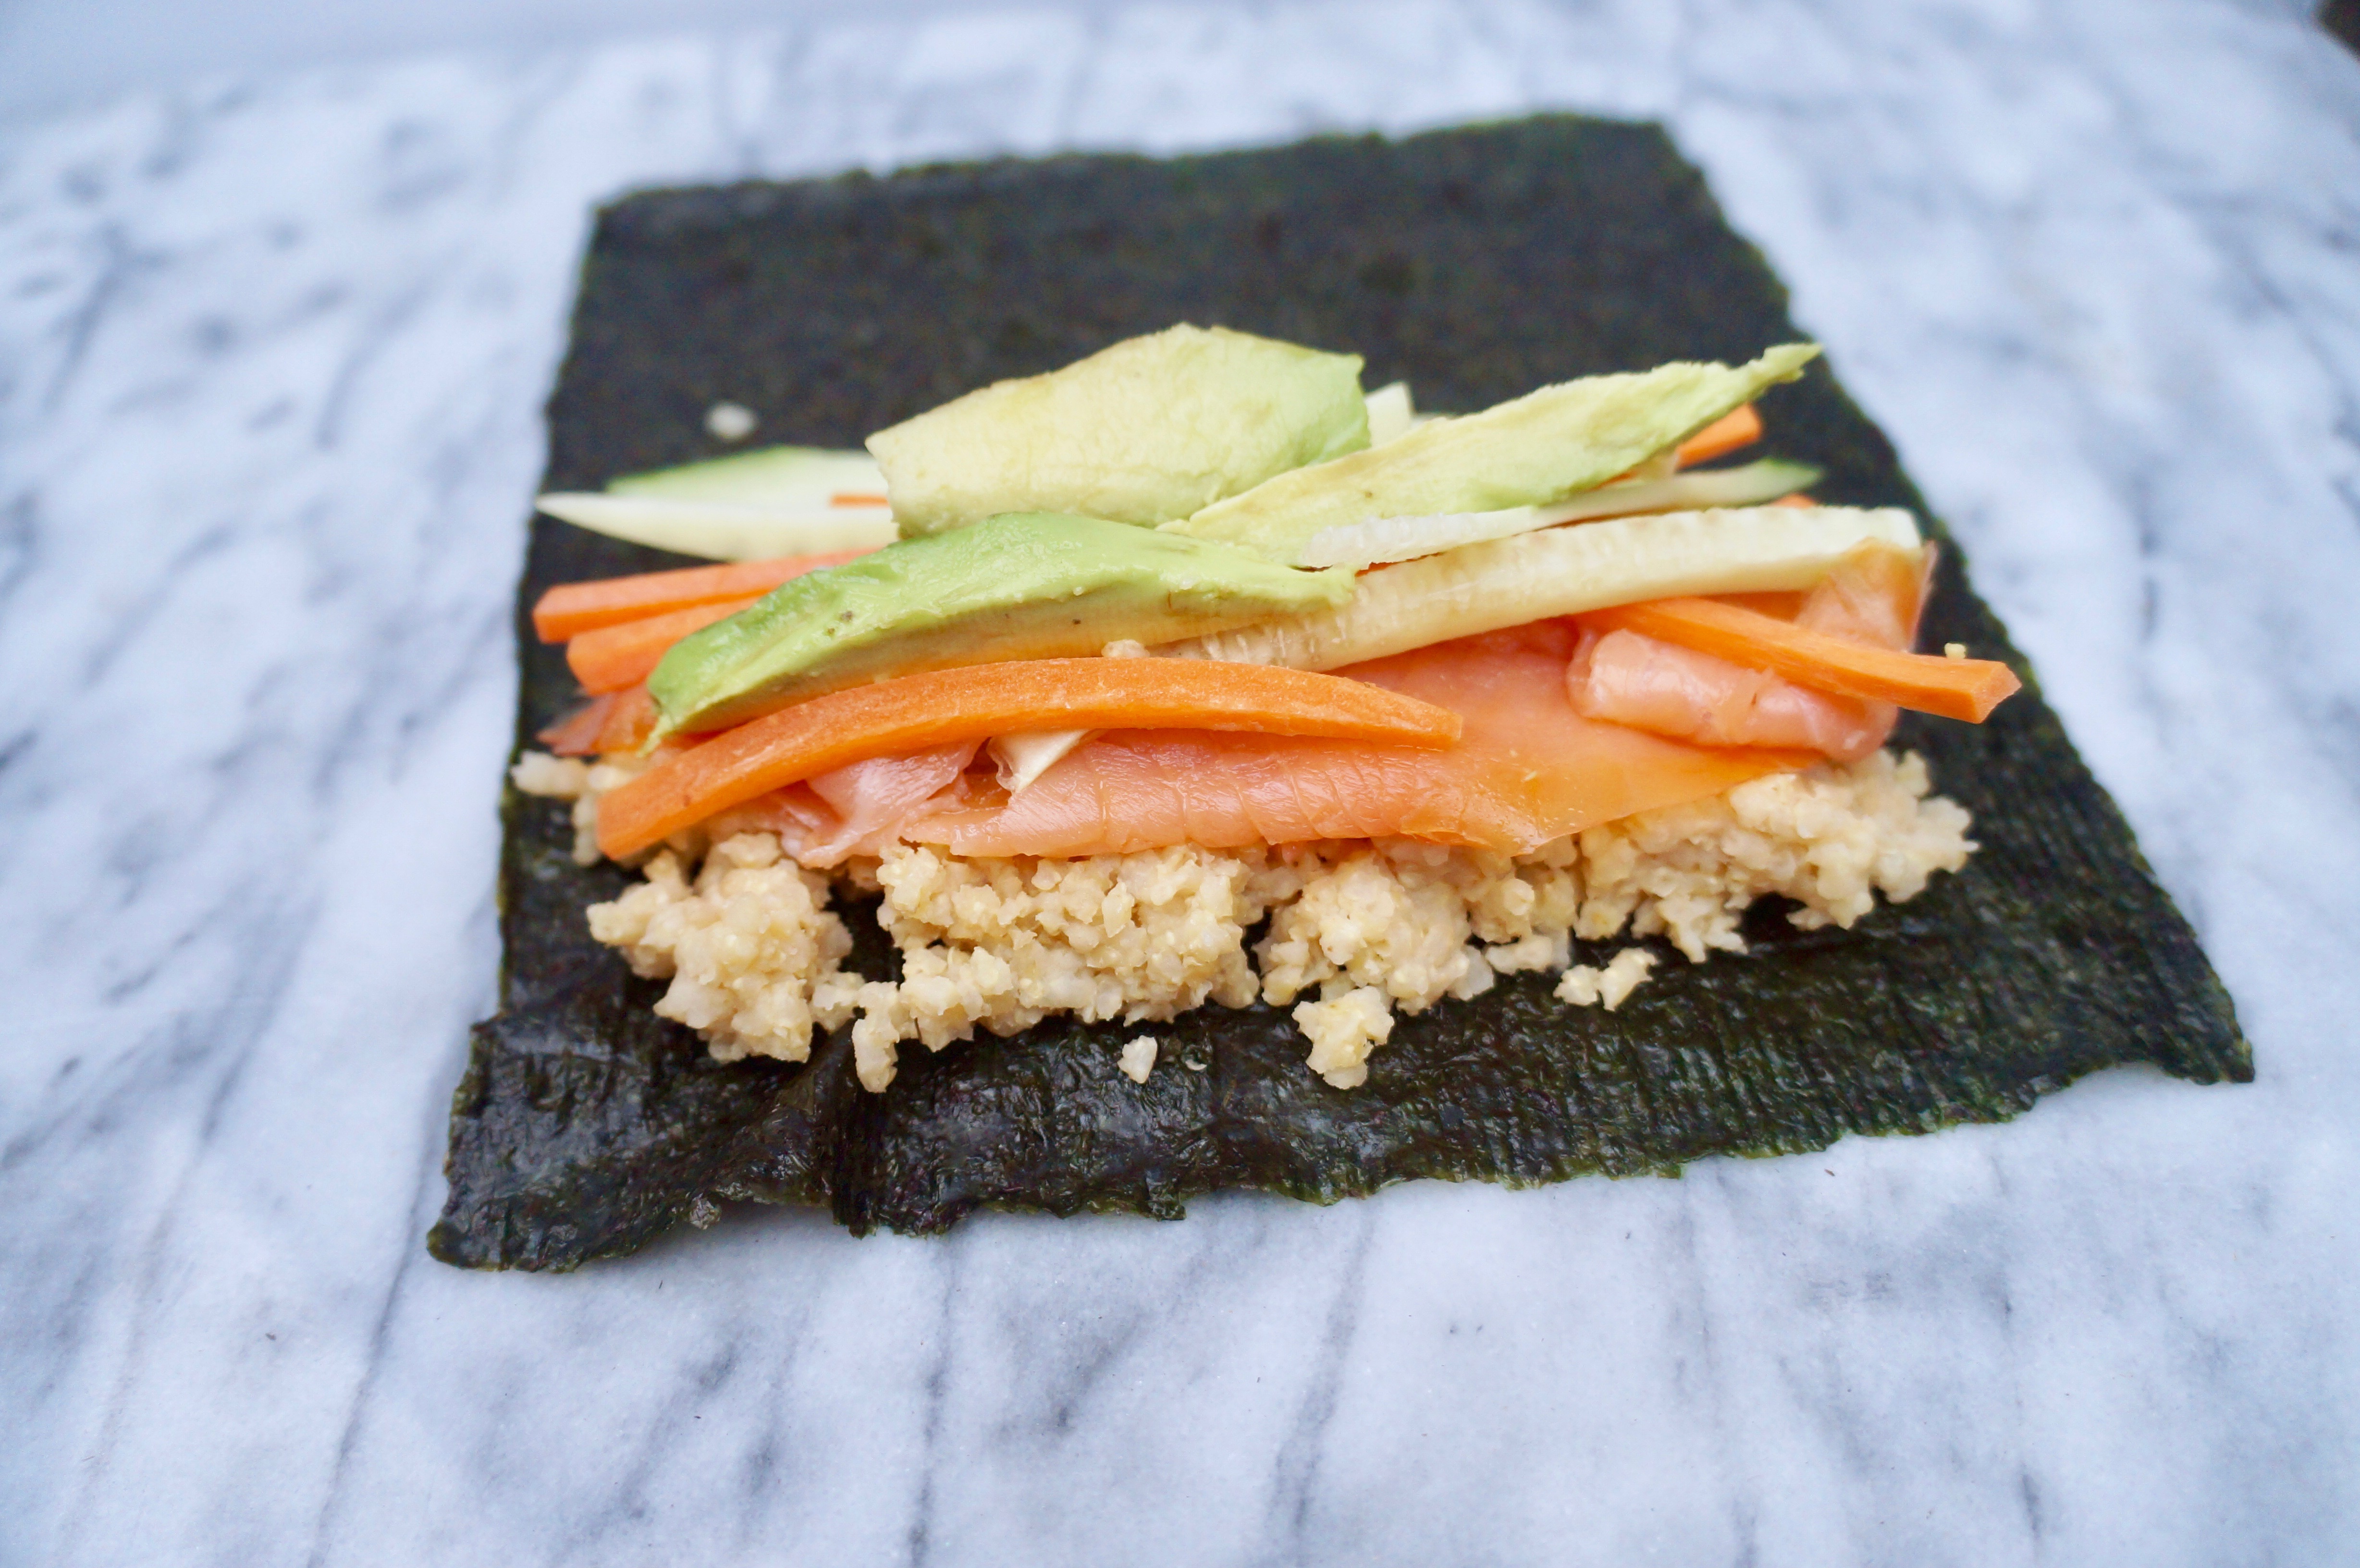 Millet Nori Wrap with Smoked Salmon